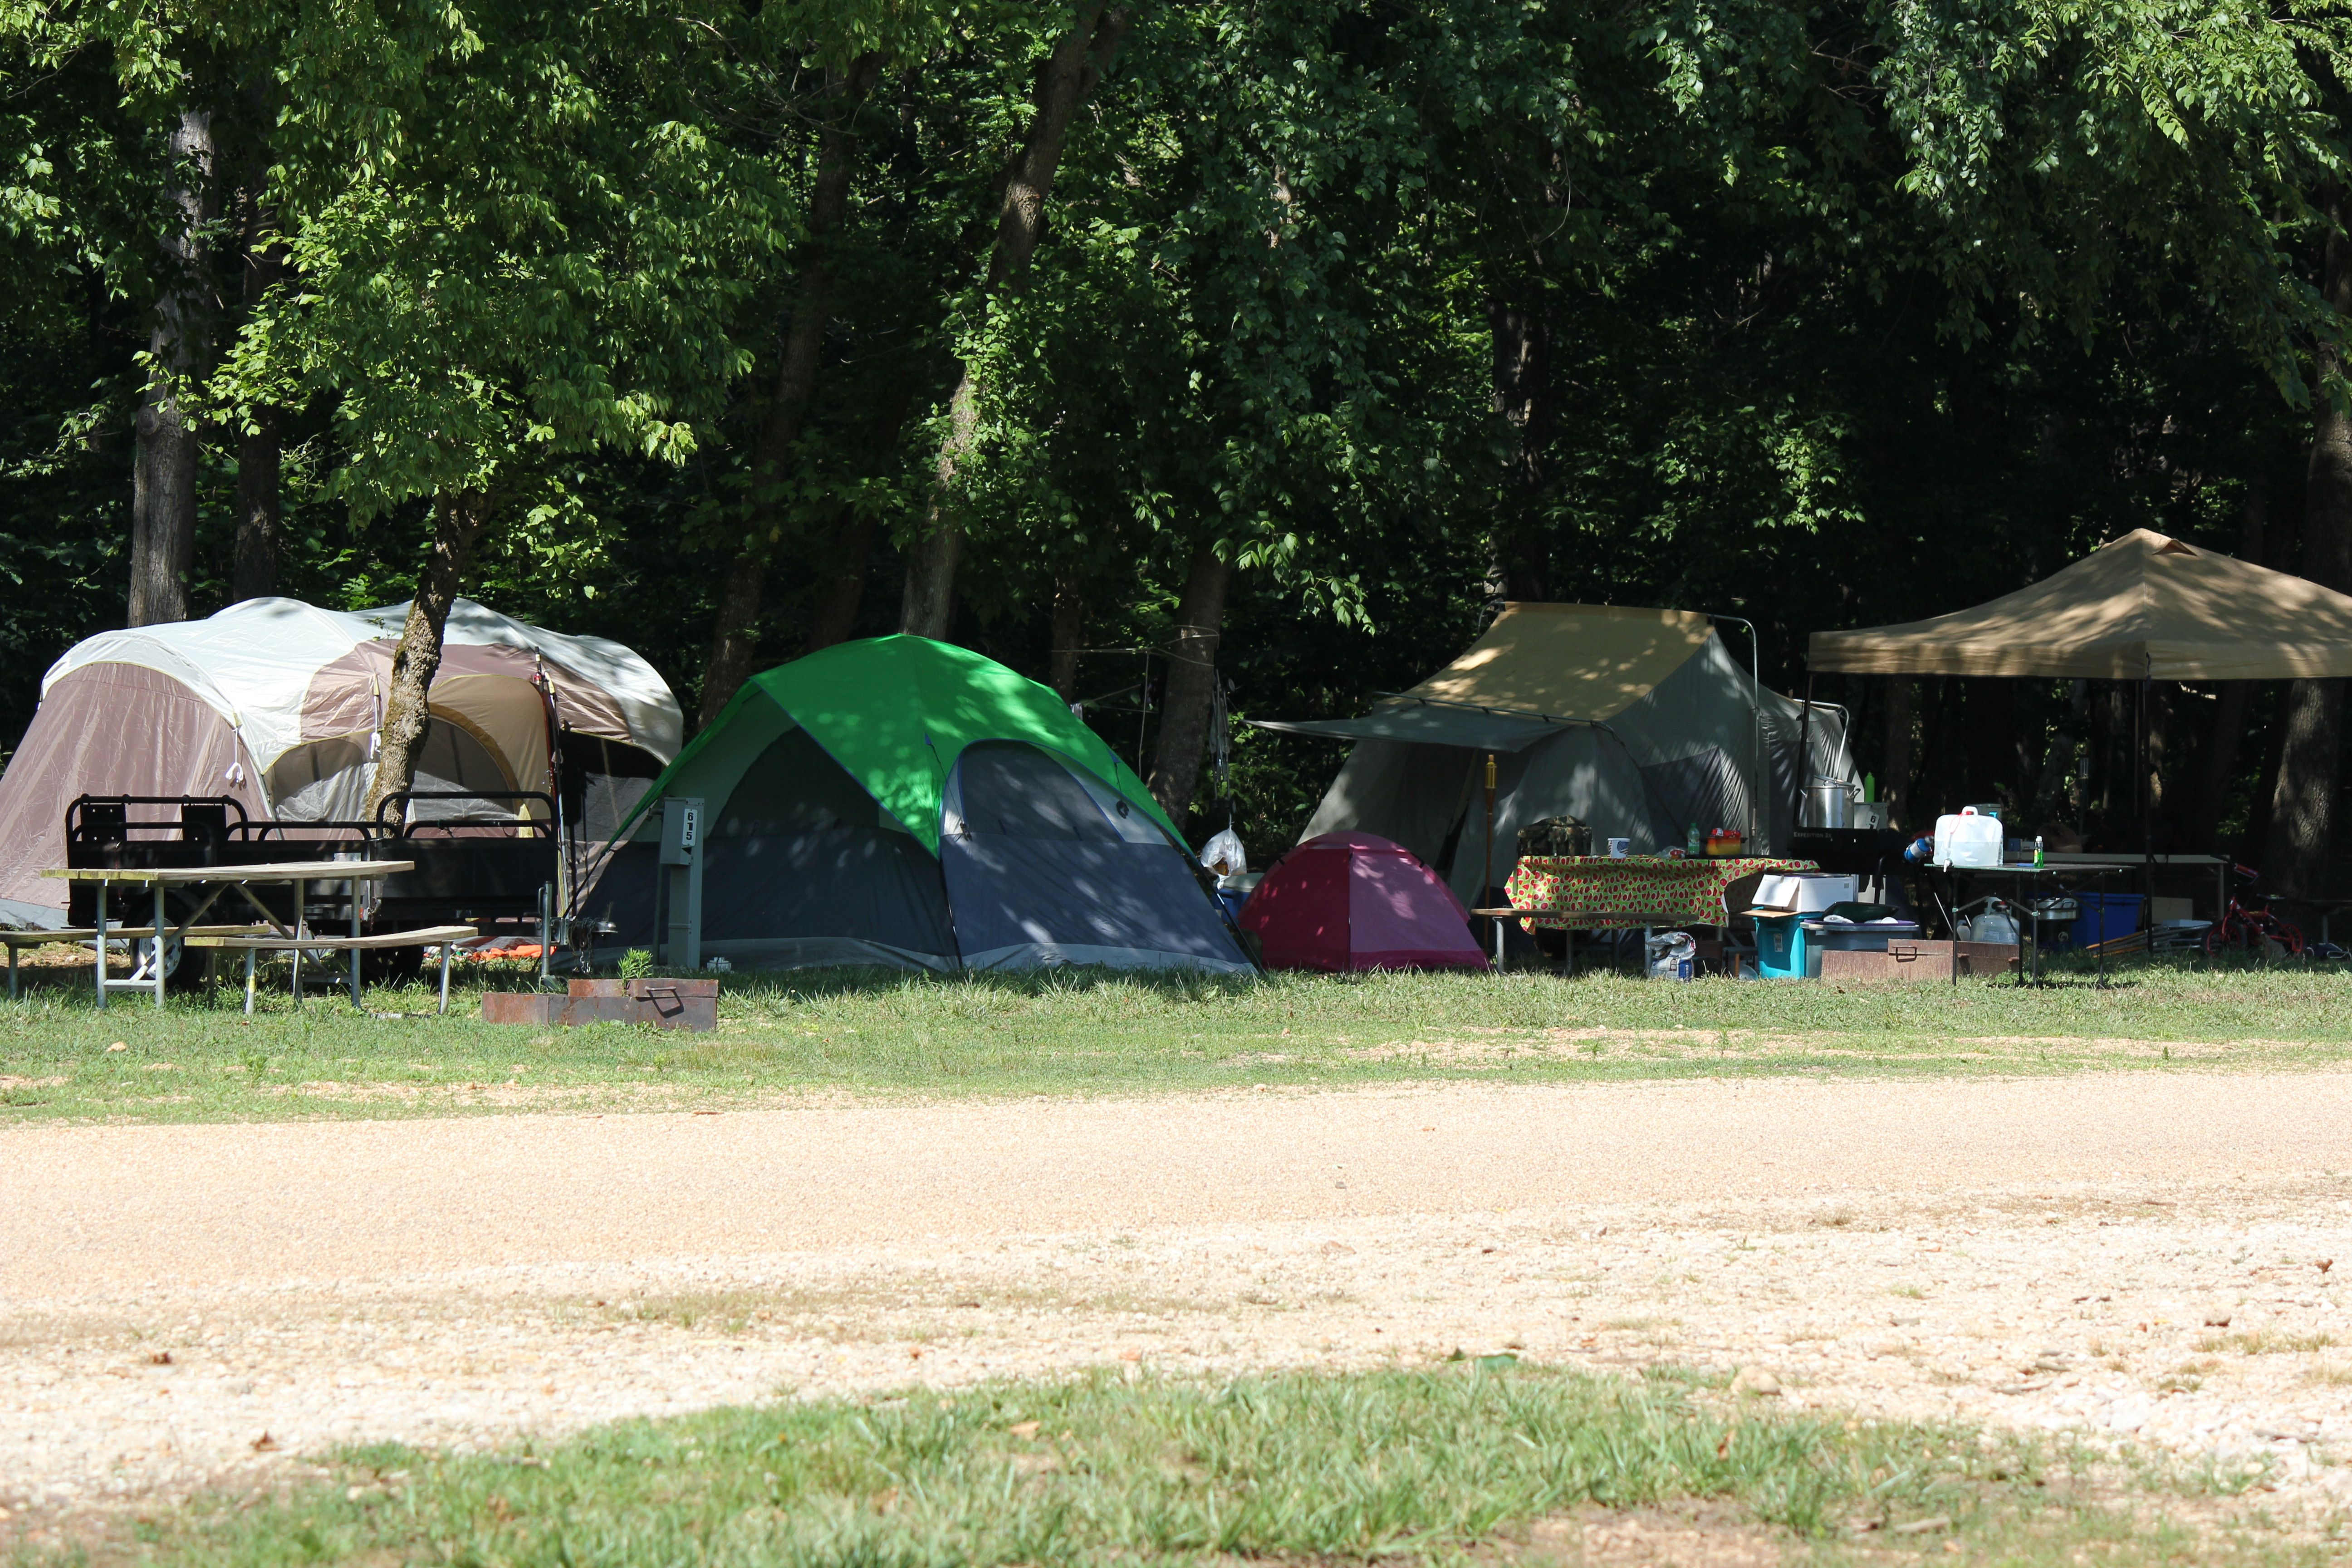 Come on Down and Enjoy Tent Campsites in the Shade!!!